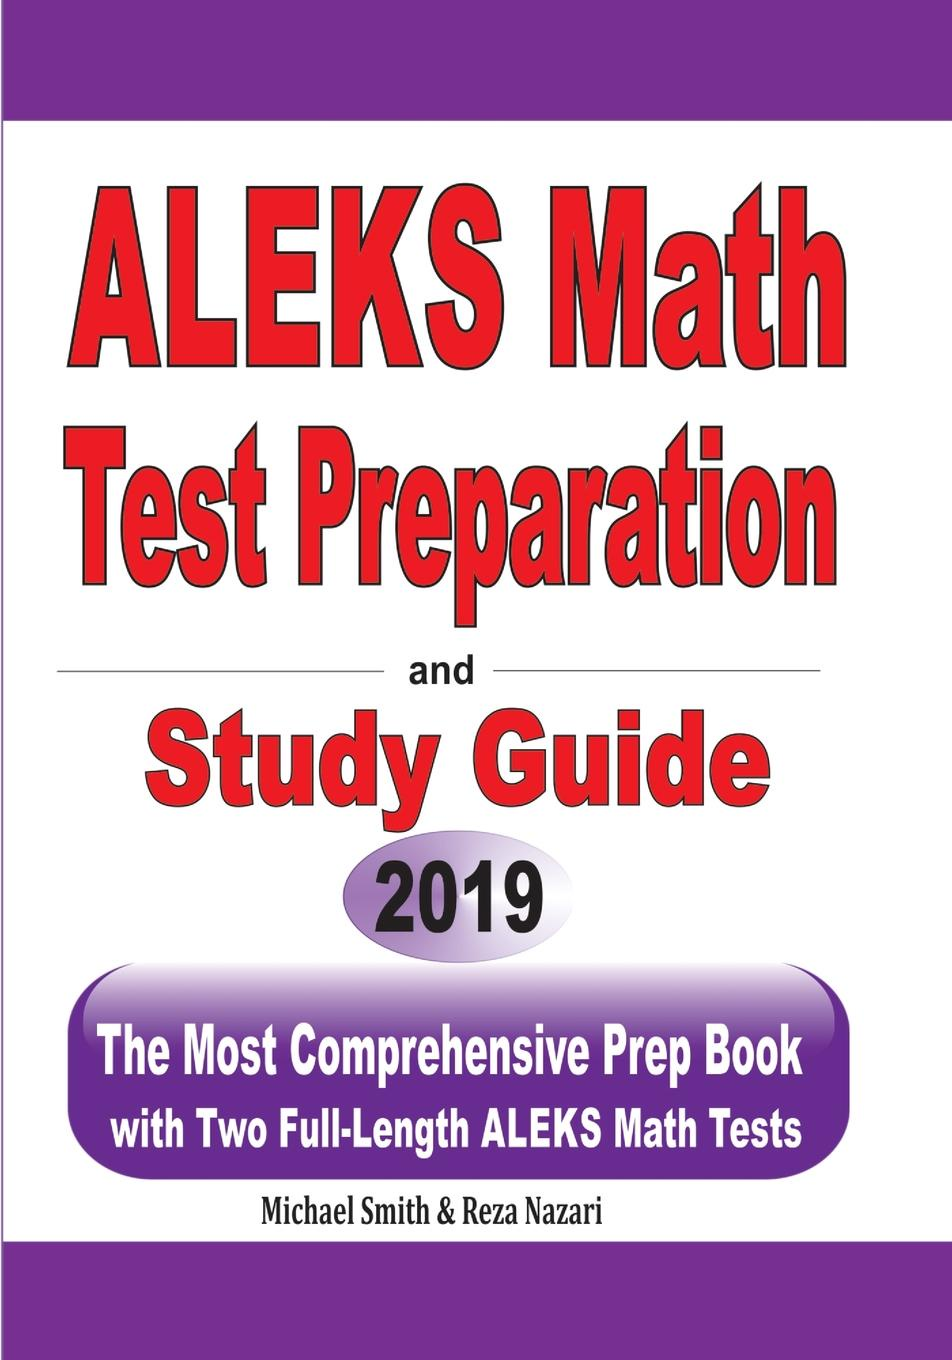 Michael Smith, Reza Nazari ALEKS Math Test Preparation and study guide. The Most Comprehensive Prep Book with Two Full-Length ALEKS Math Tests